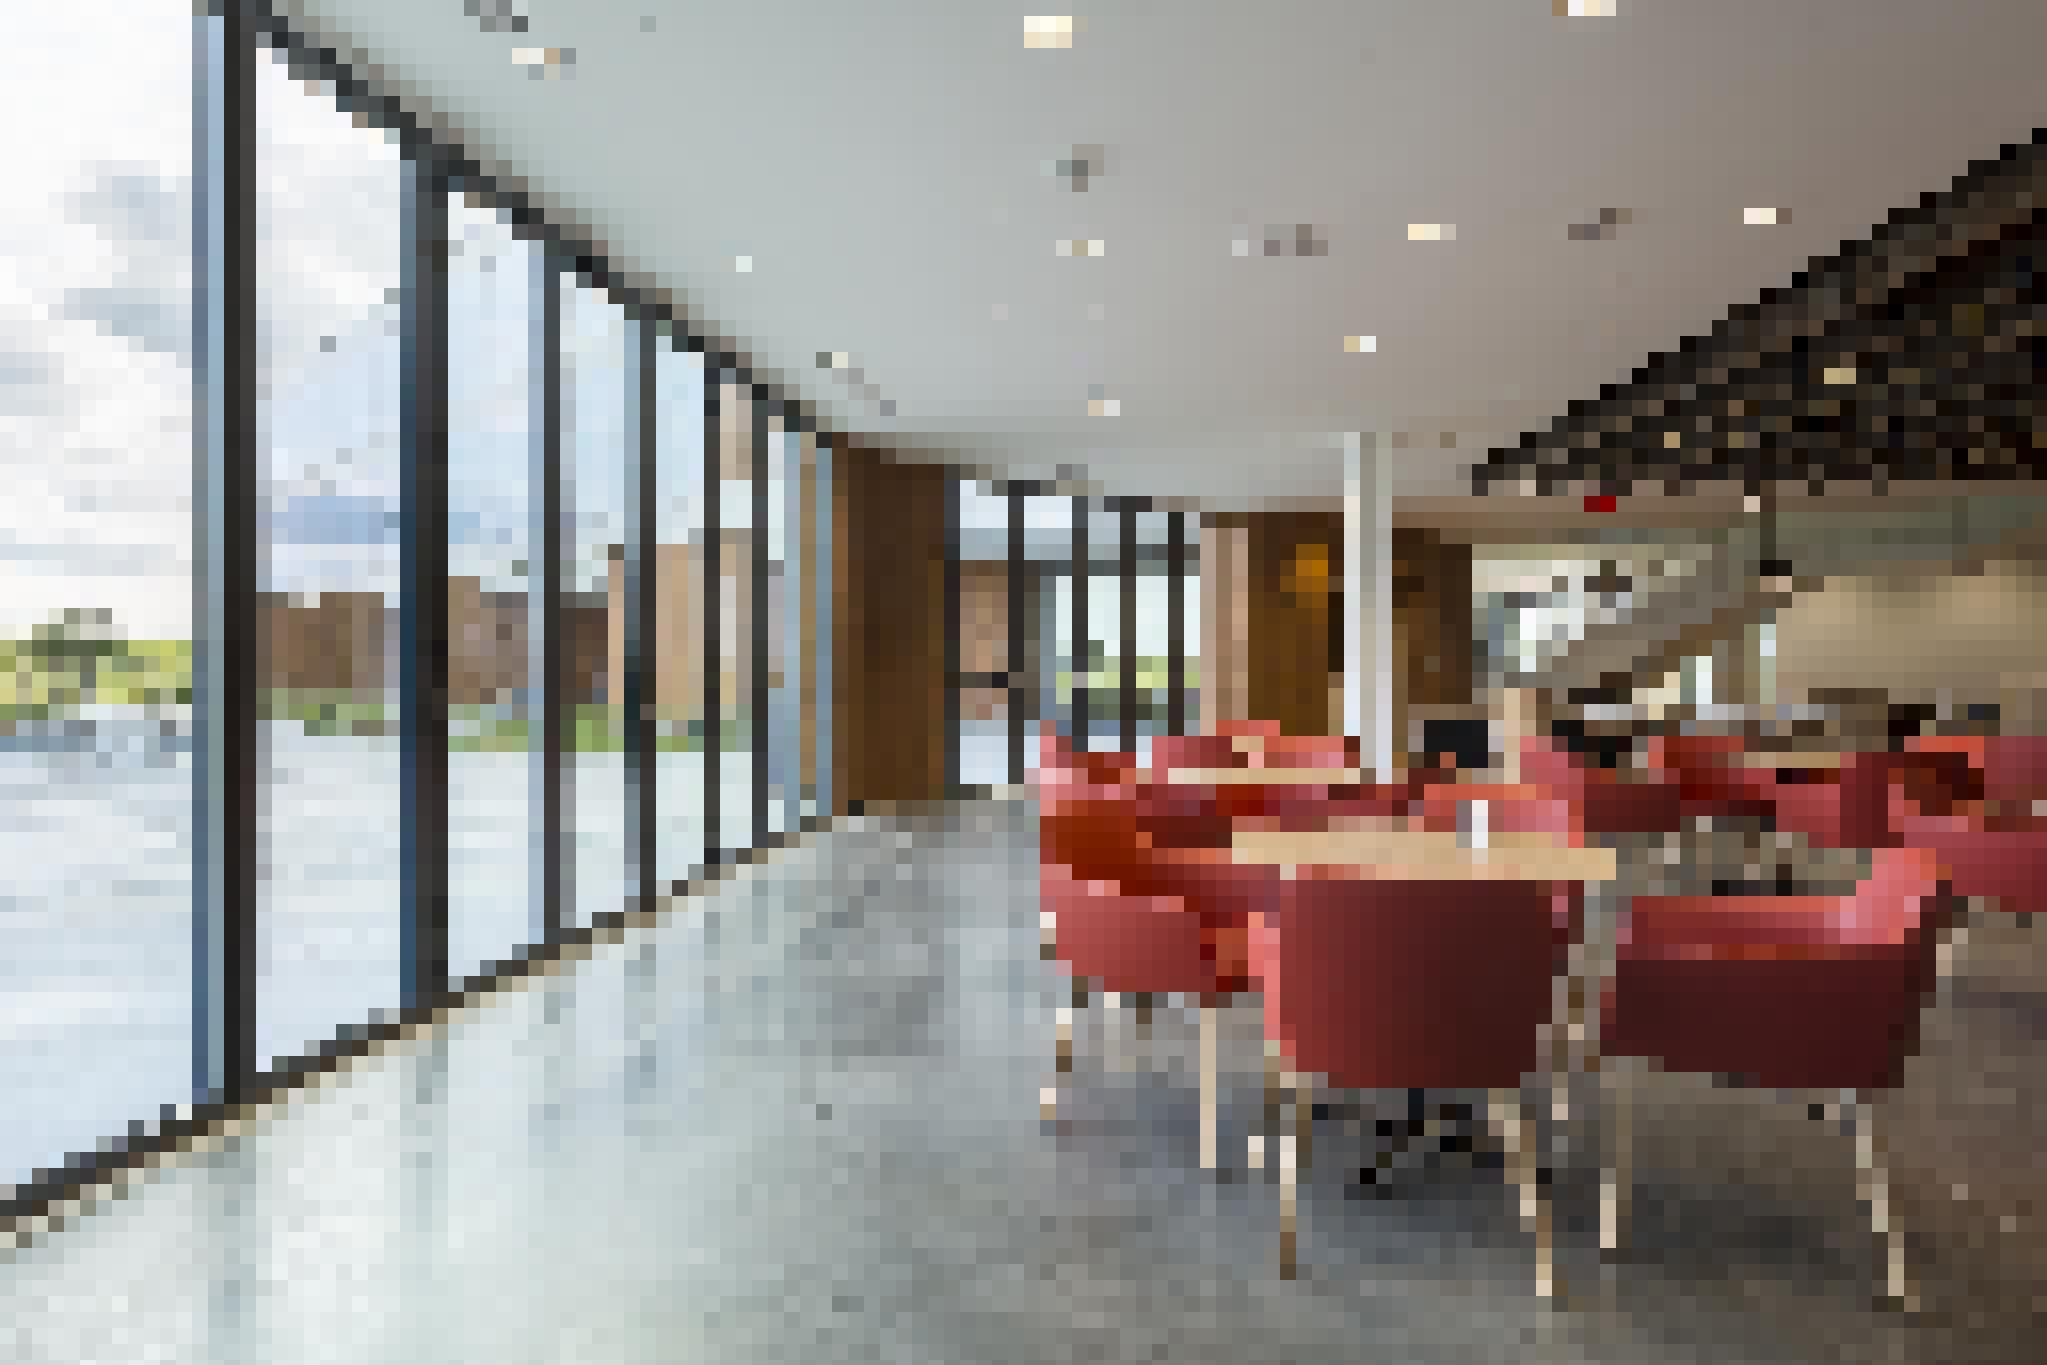 offices exterior- interior lunch room with large glass panels